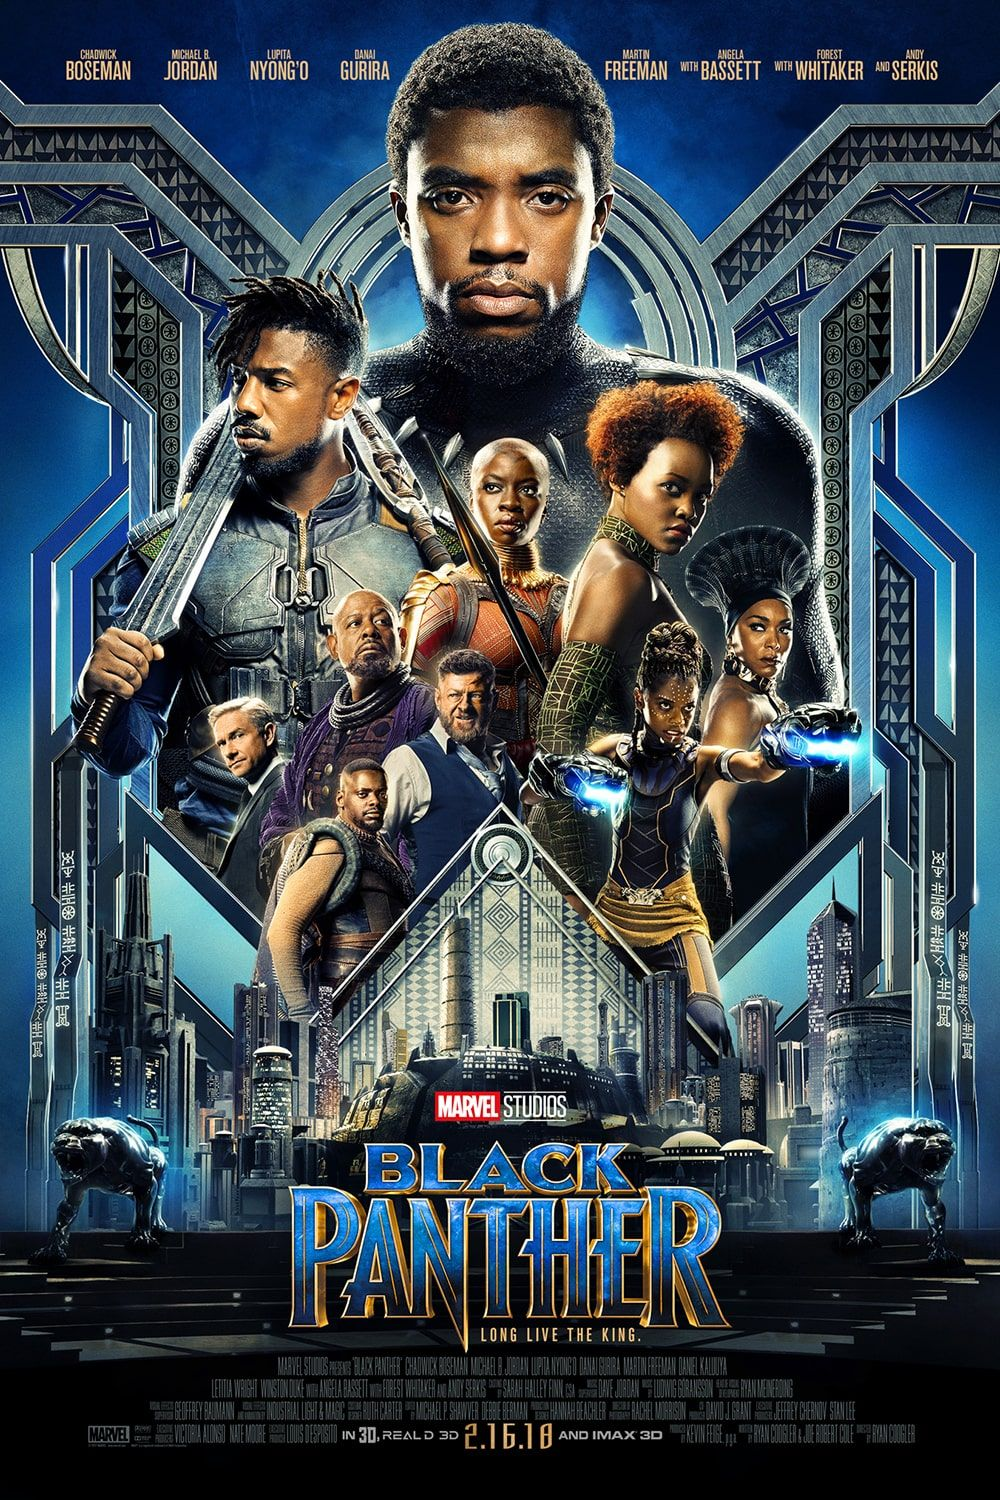 Download Black Panther 2018 Movie In Hindi In 2020 Black Panther Movie Poster Marvel Movie Posters Black Panther Marvel